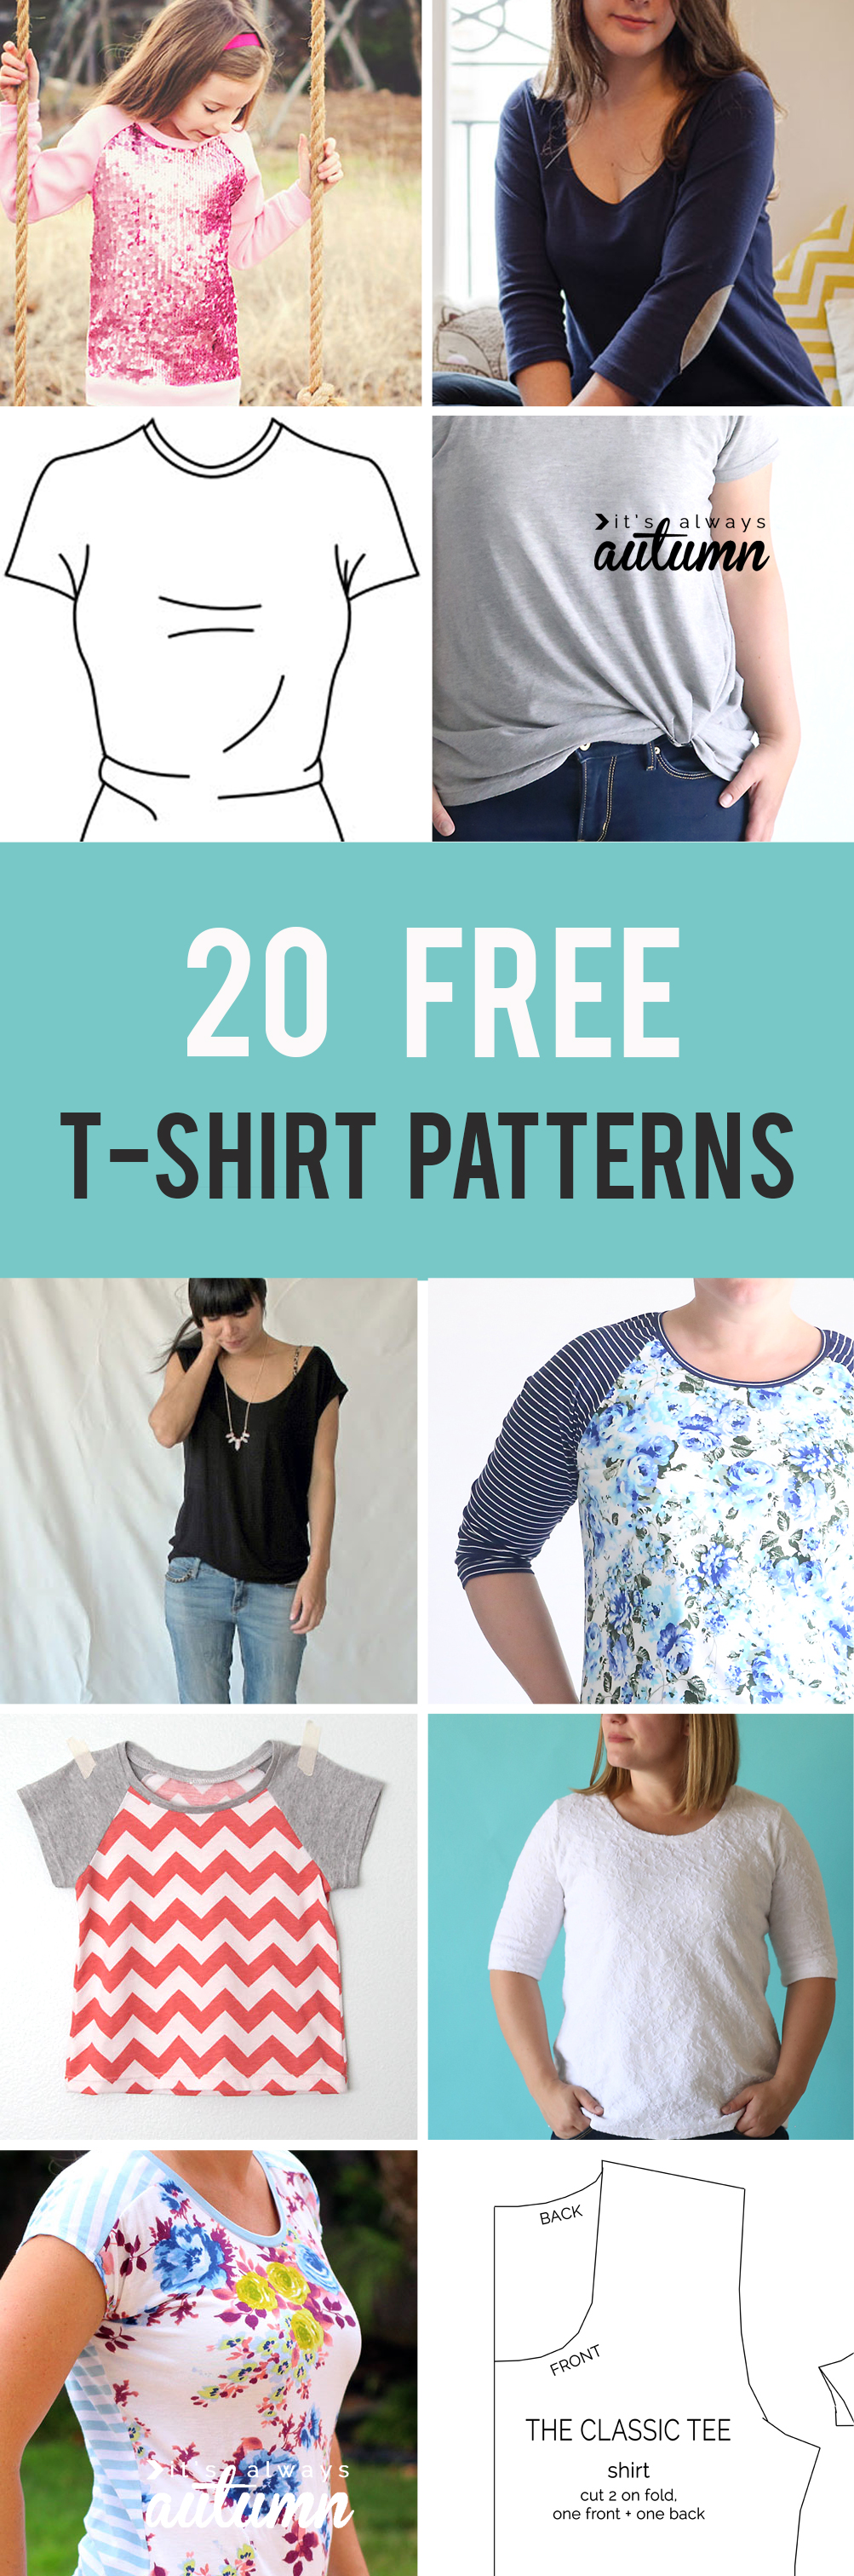 20 free t-shirt patterns you can print and sew at home! Free sewing patterns for women's t-shirts, kids t-shirts, mens t-shirts.